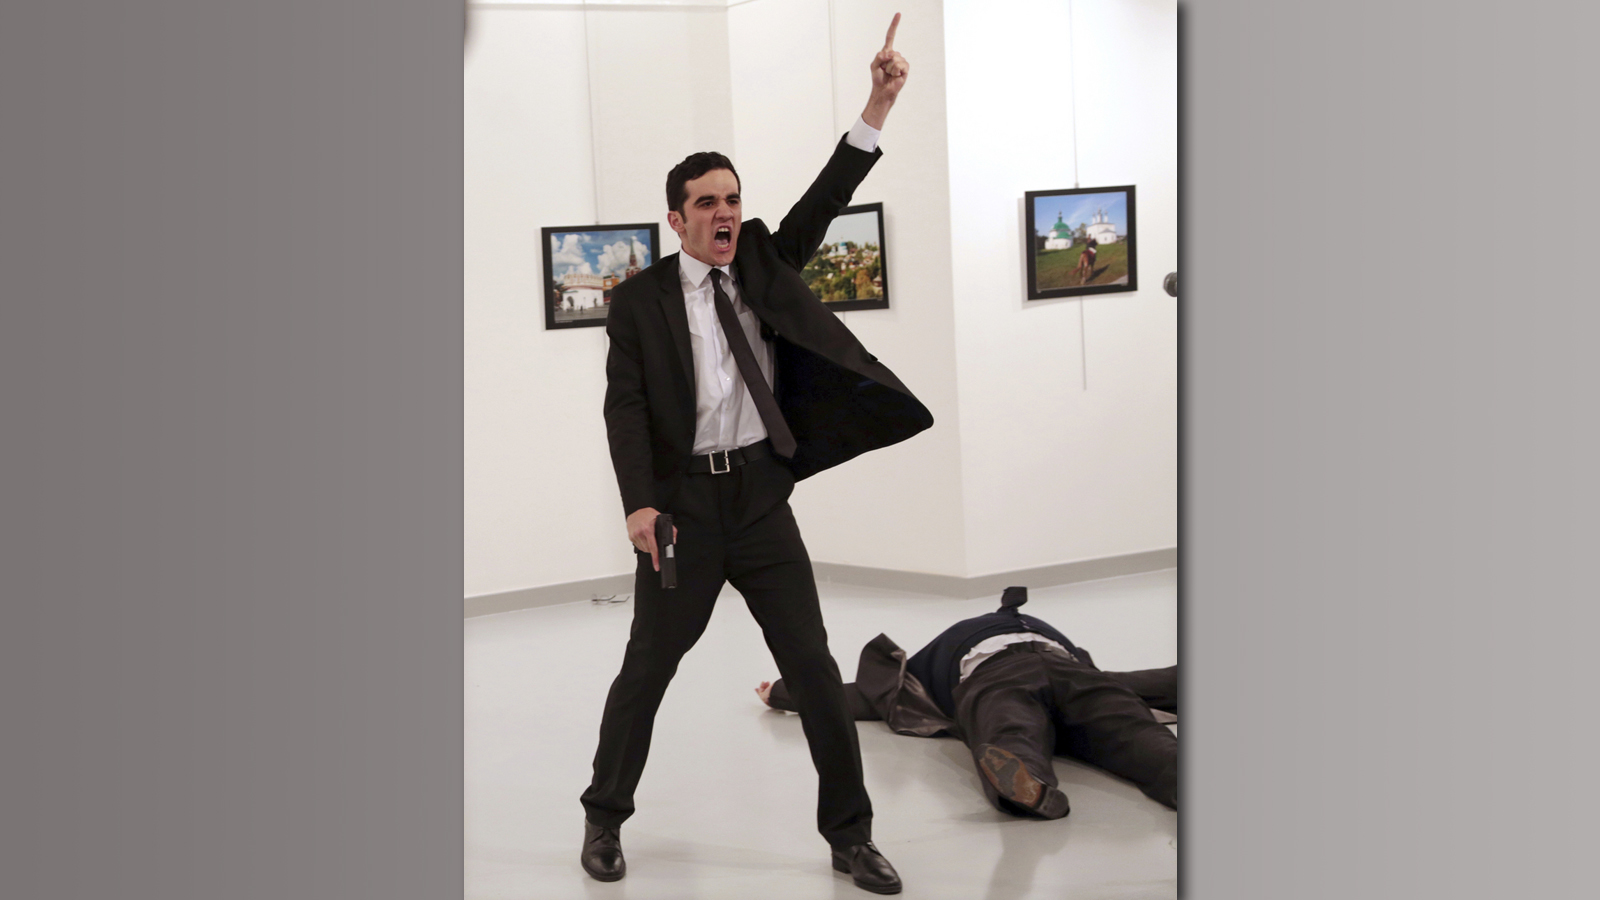 L'image de l'assassin de l'ambassadeur russe en Turquie a remporté le World Press Photo.